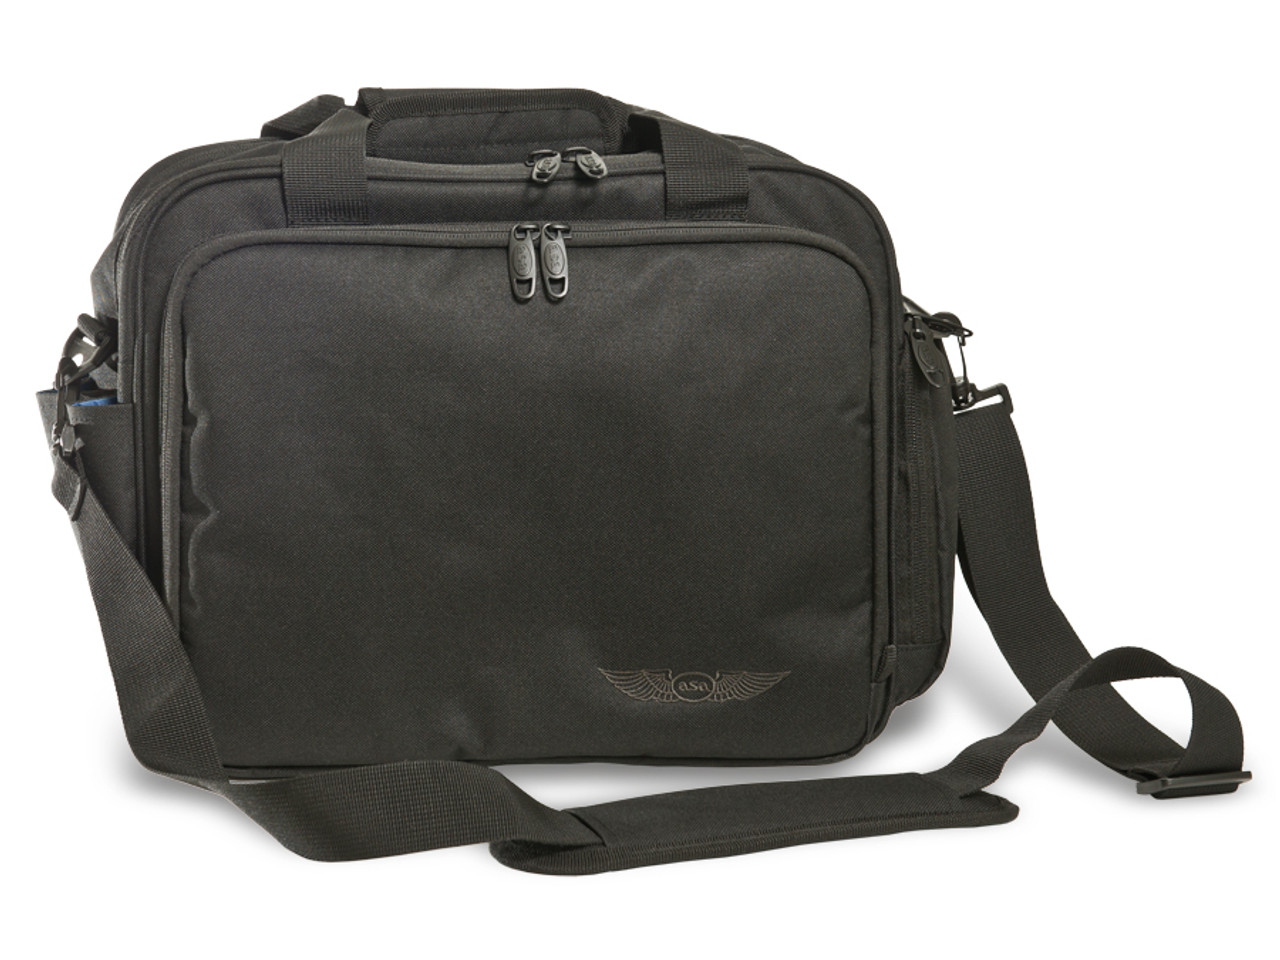 ASA Tablet Bag